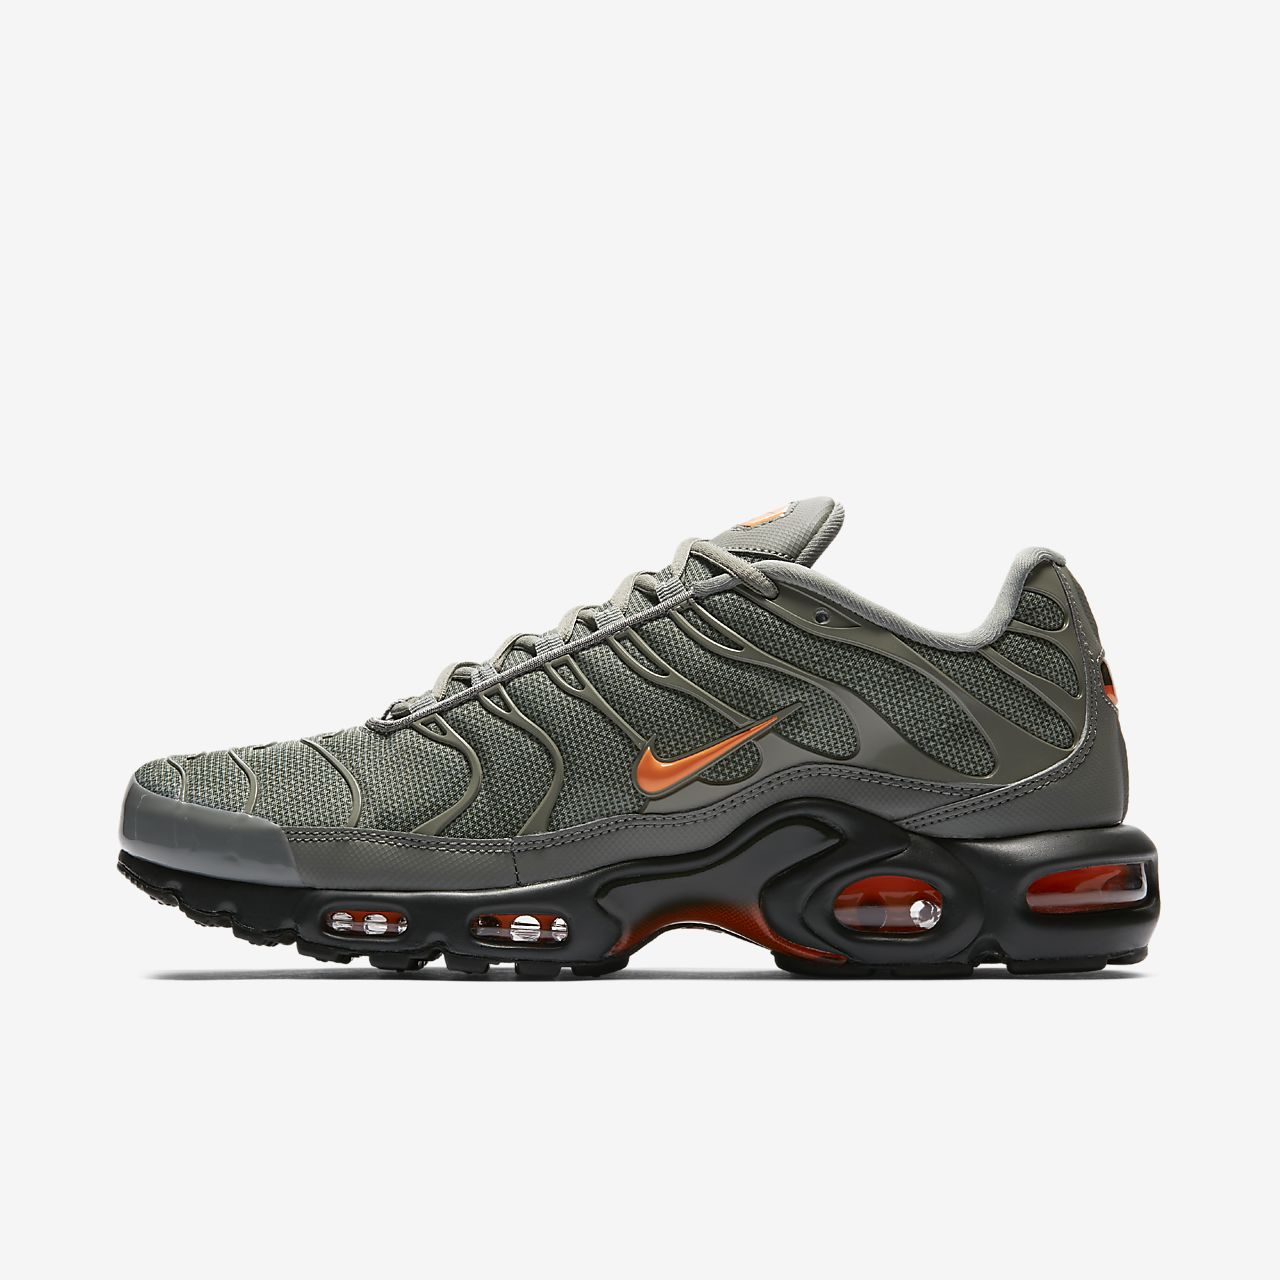 Nike Air Max Plus Jacquard Men's Lifestyle Shoes Black rG7406G